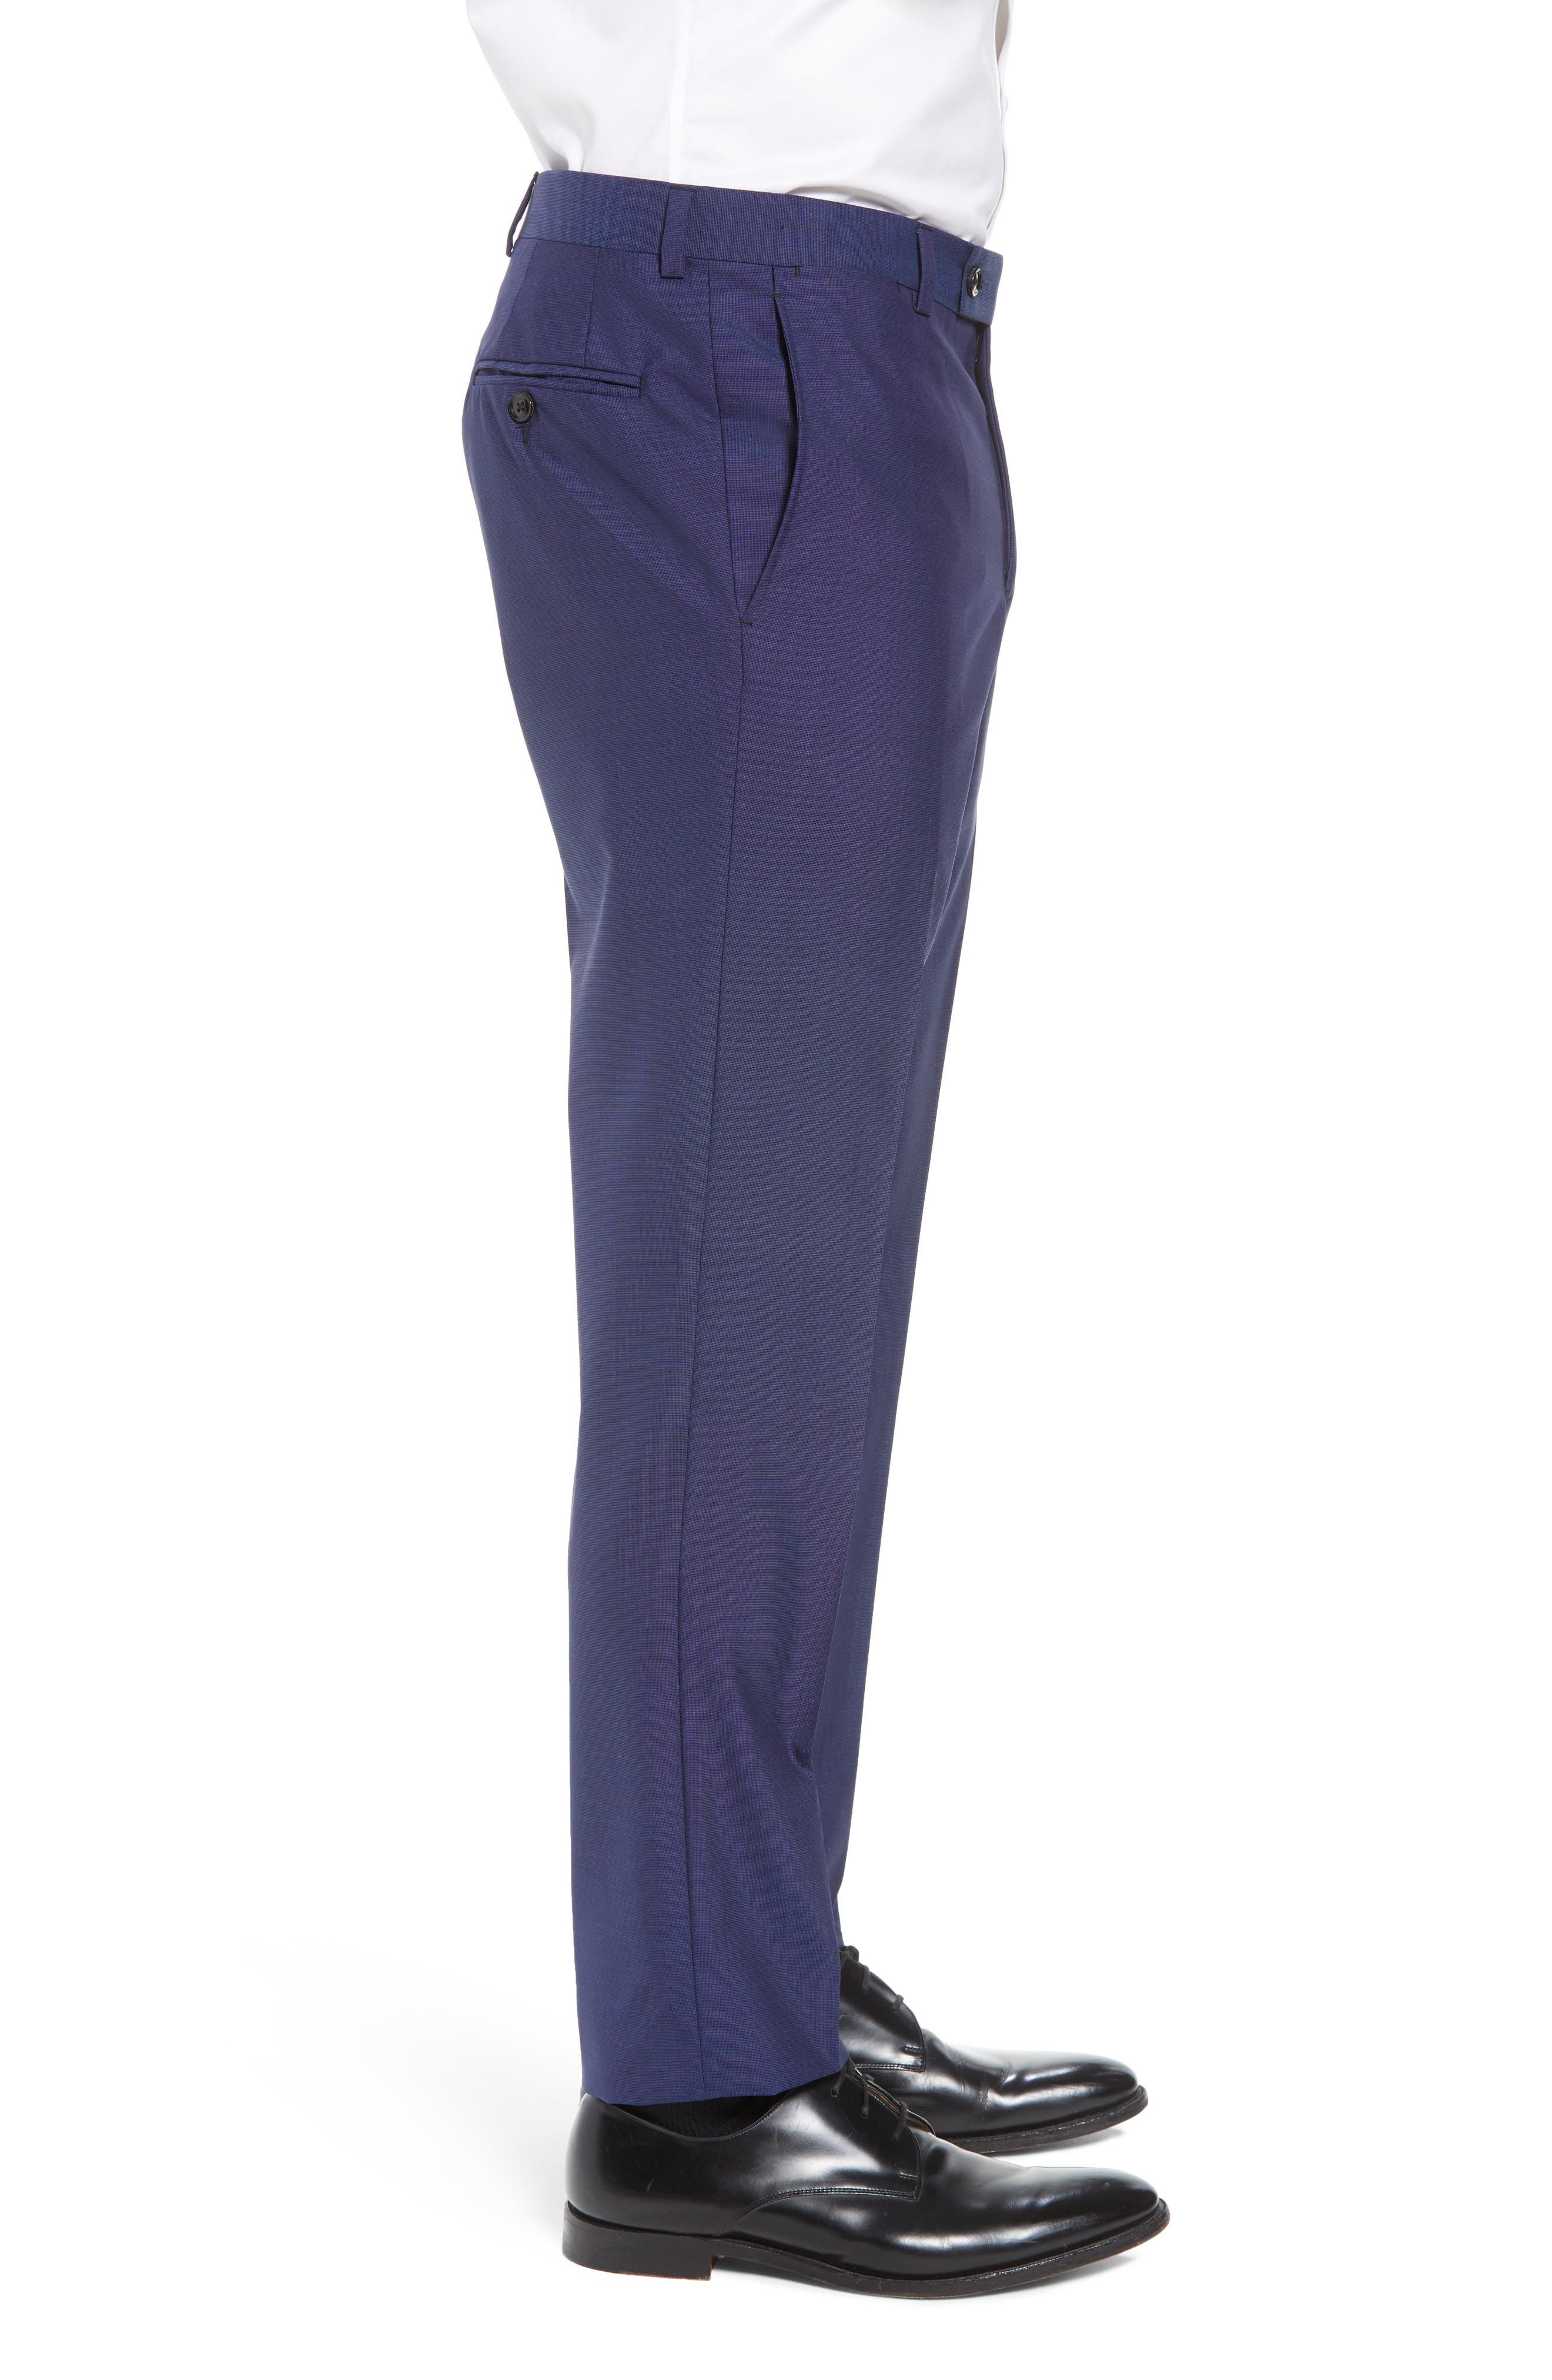 TED BAKER LONDON, Jefferson Flat Front Solid Wool Trousers, Alternate thumbnail 5, color, BLUE